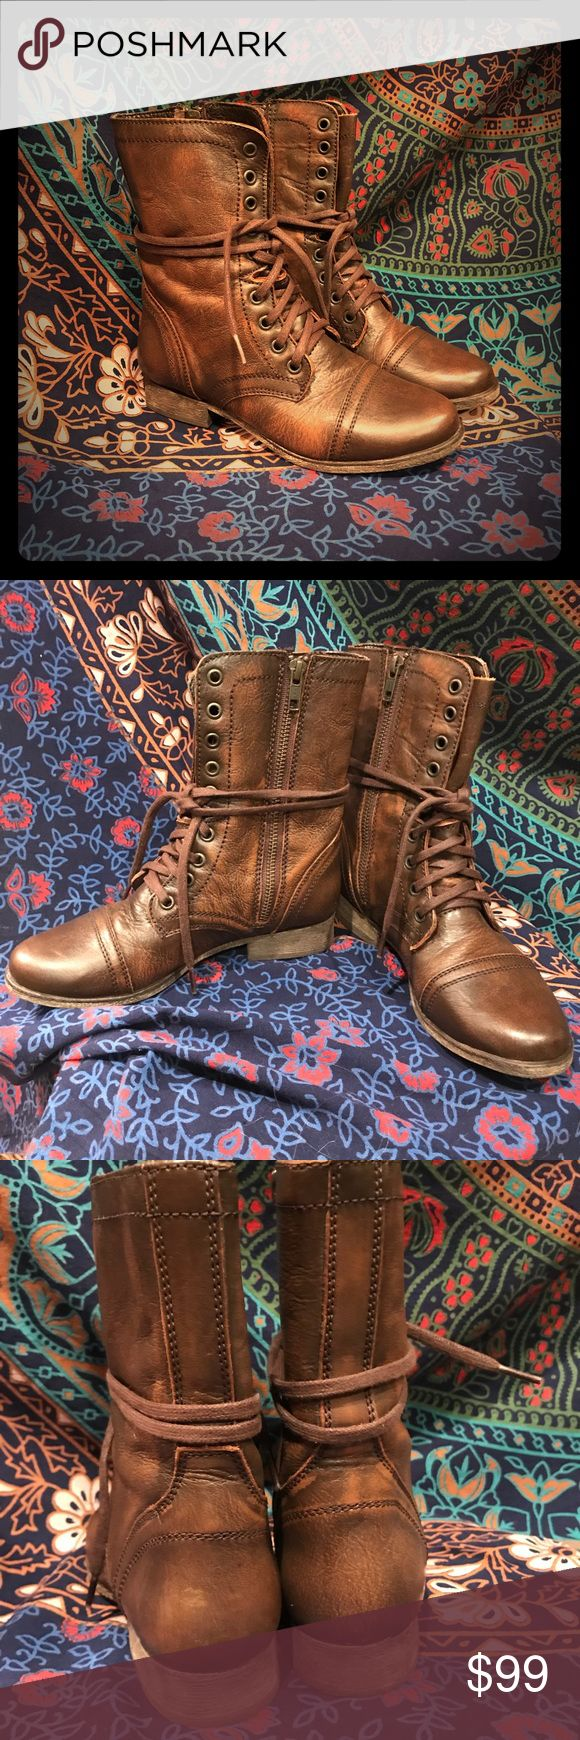 NWT Steve Madden Troopa ORIGINAL Sz 5.5 😍🔥🖤 Back before Ol' Steve added a chunkier heel and goofy rounder toe, there were these...the OG Steve Madden Troopa Combat Boots   Gorgeous Cognac Leather with waxed laces and zipper on inner side. Perfect with shorts, jeans, and even dresses!   This is a BRAND NEW pair of Sz 5.5 in ORIGINAL box, PERFECT CONDITION. Only tried on in store and inside my house.   The 2.0 retails for $79 — these were $139 (should tell you something about the quality…